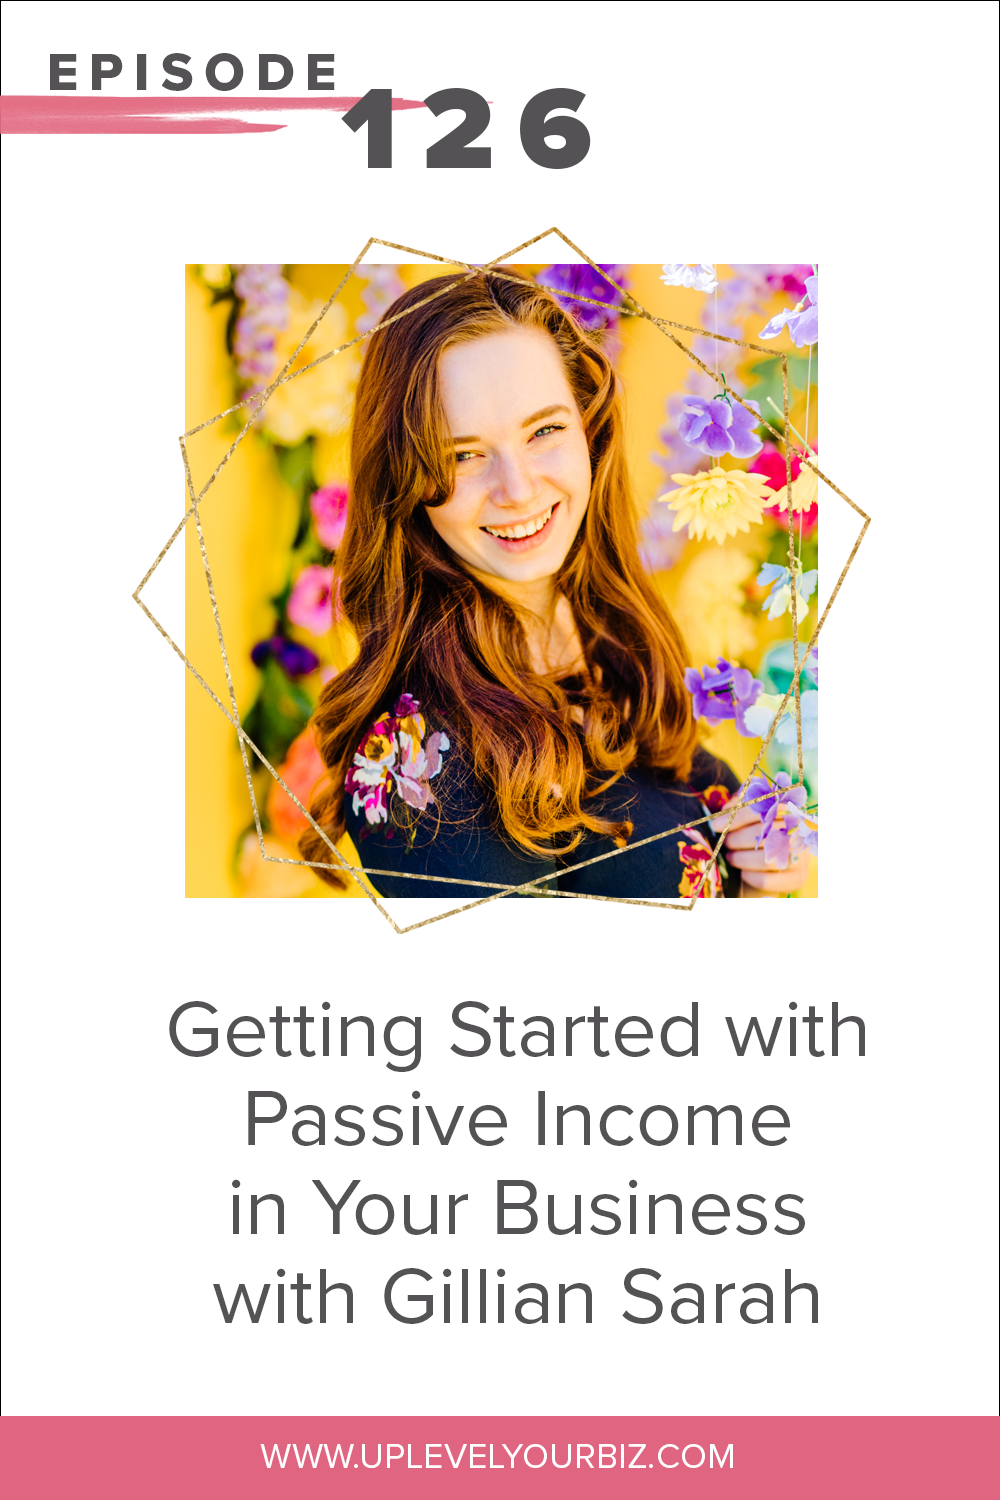 Episode #126 | Getting Started with Passive Income in Your Business with Gillian Sarah